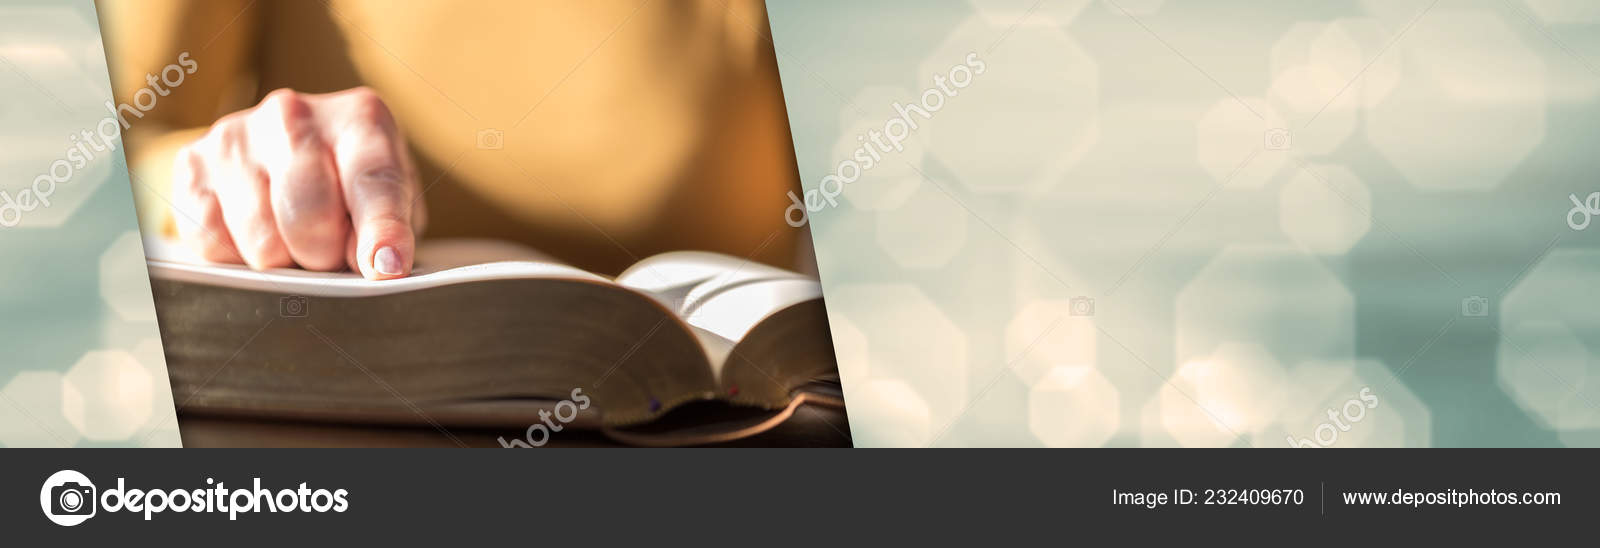 Close Woman Reading Bible Hard Light Panoramic Banner Stock Photo C Thodonal 232409670